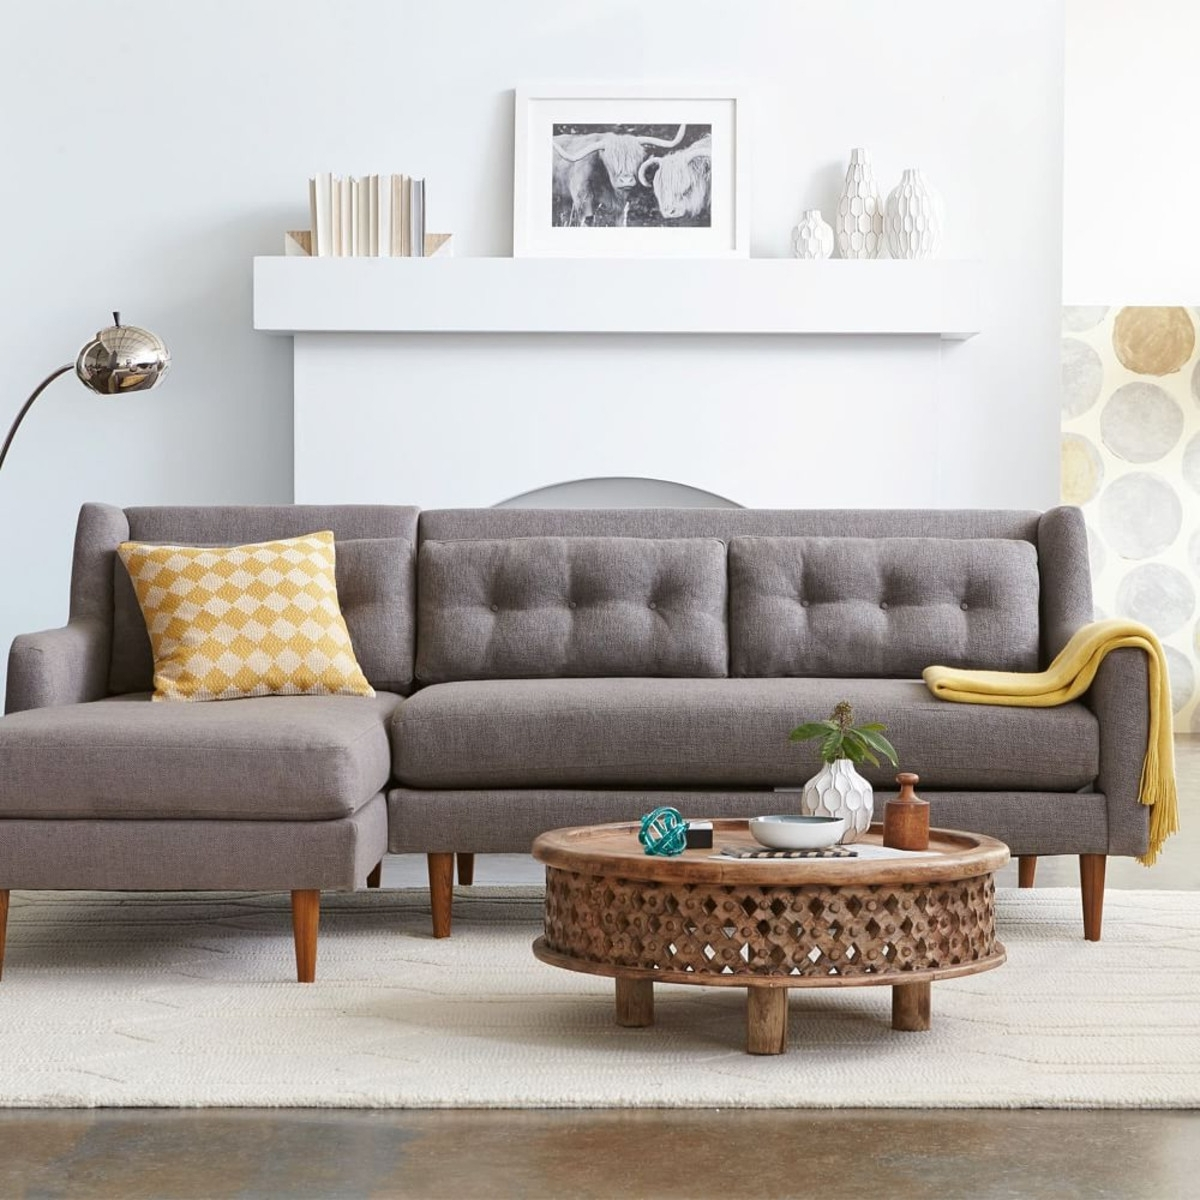 2018 Admirable 2 Piece Sectional Sofas With Chaise Flooding Interior In West Elm Sectional Sofas (View 2 of 15)